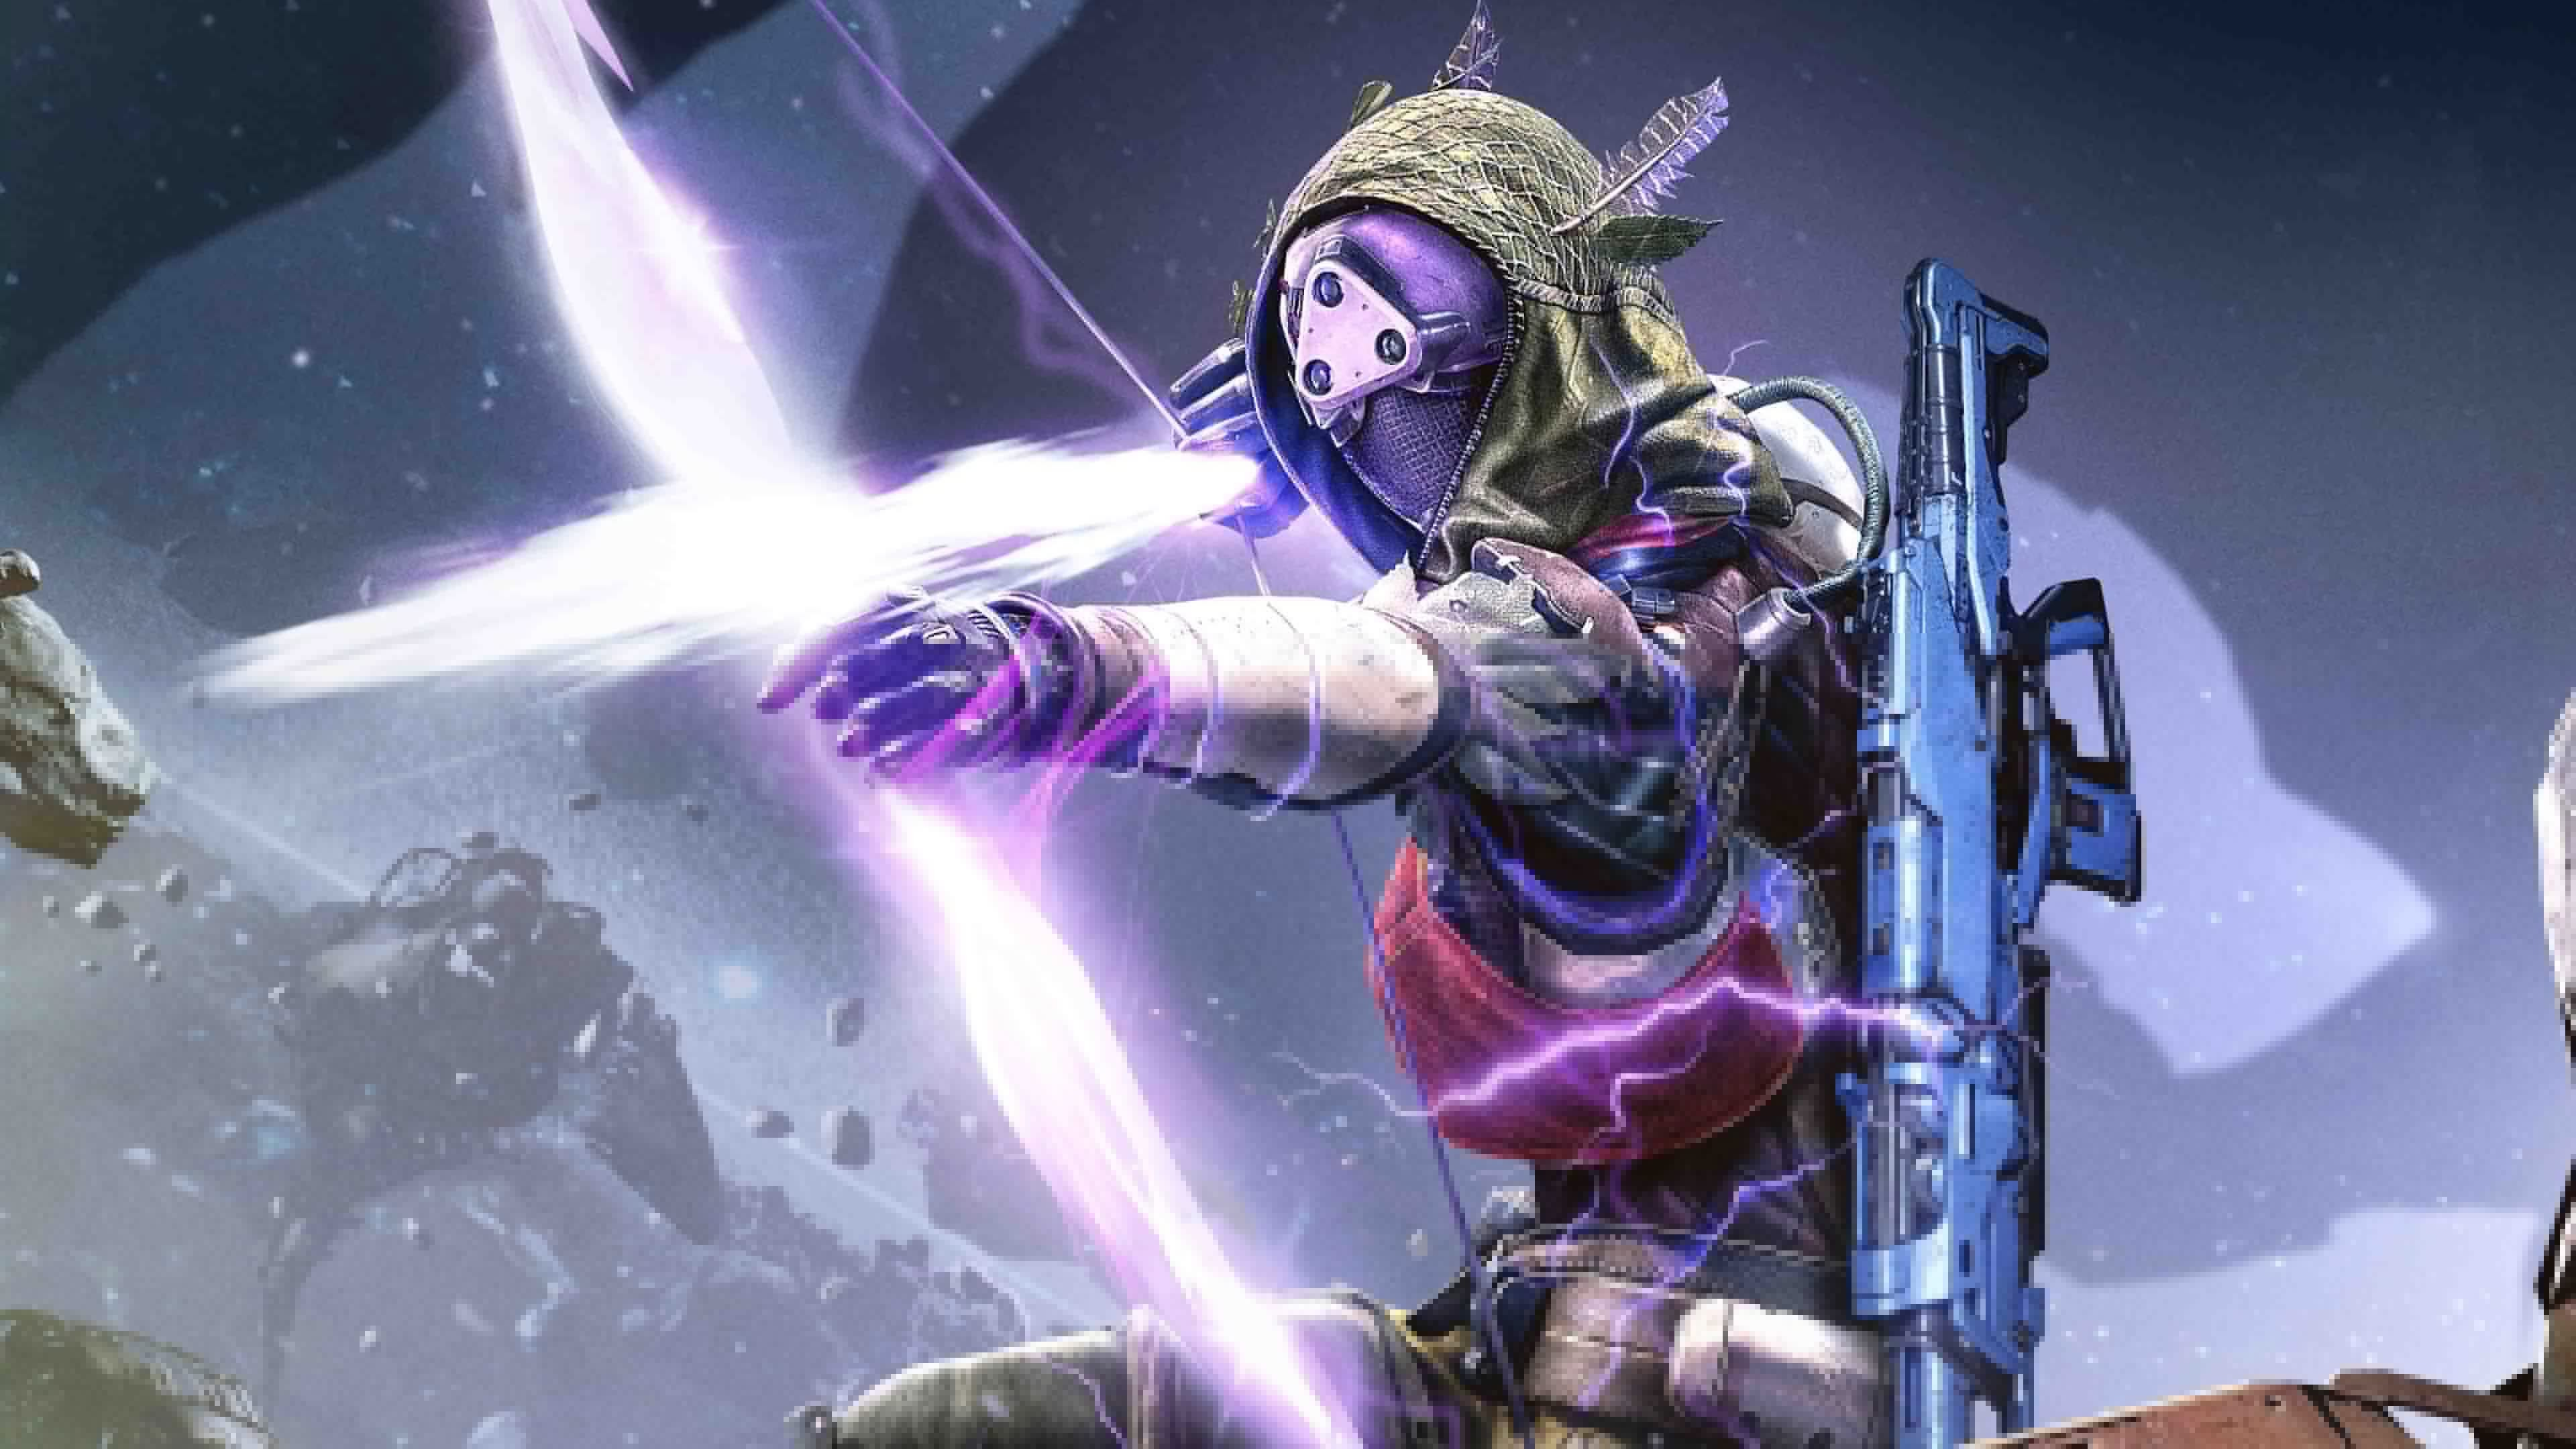 Destiny The Taken King Wallpapers | HD Wallpapers